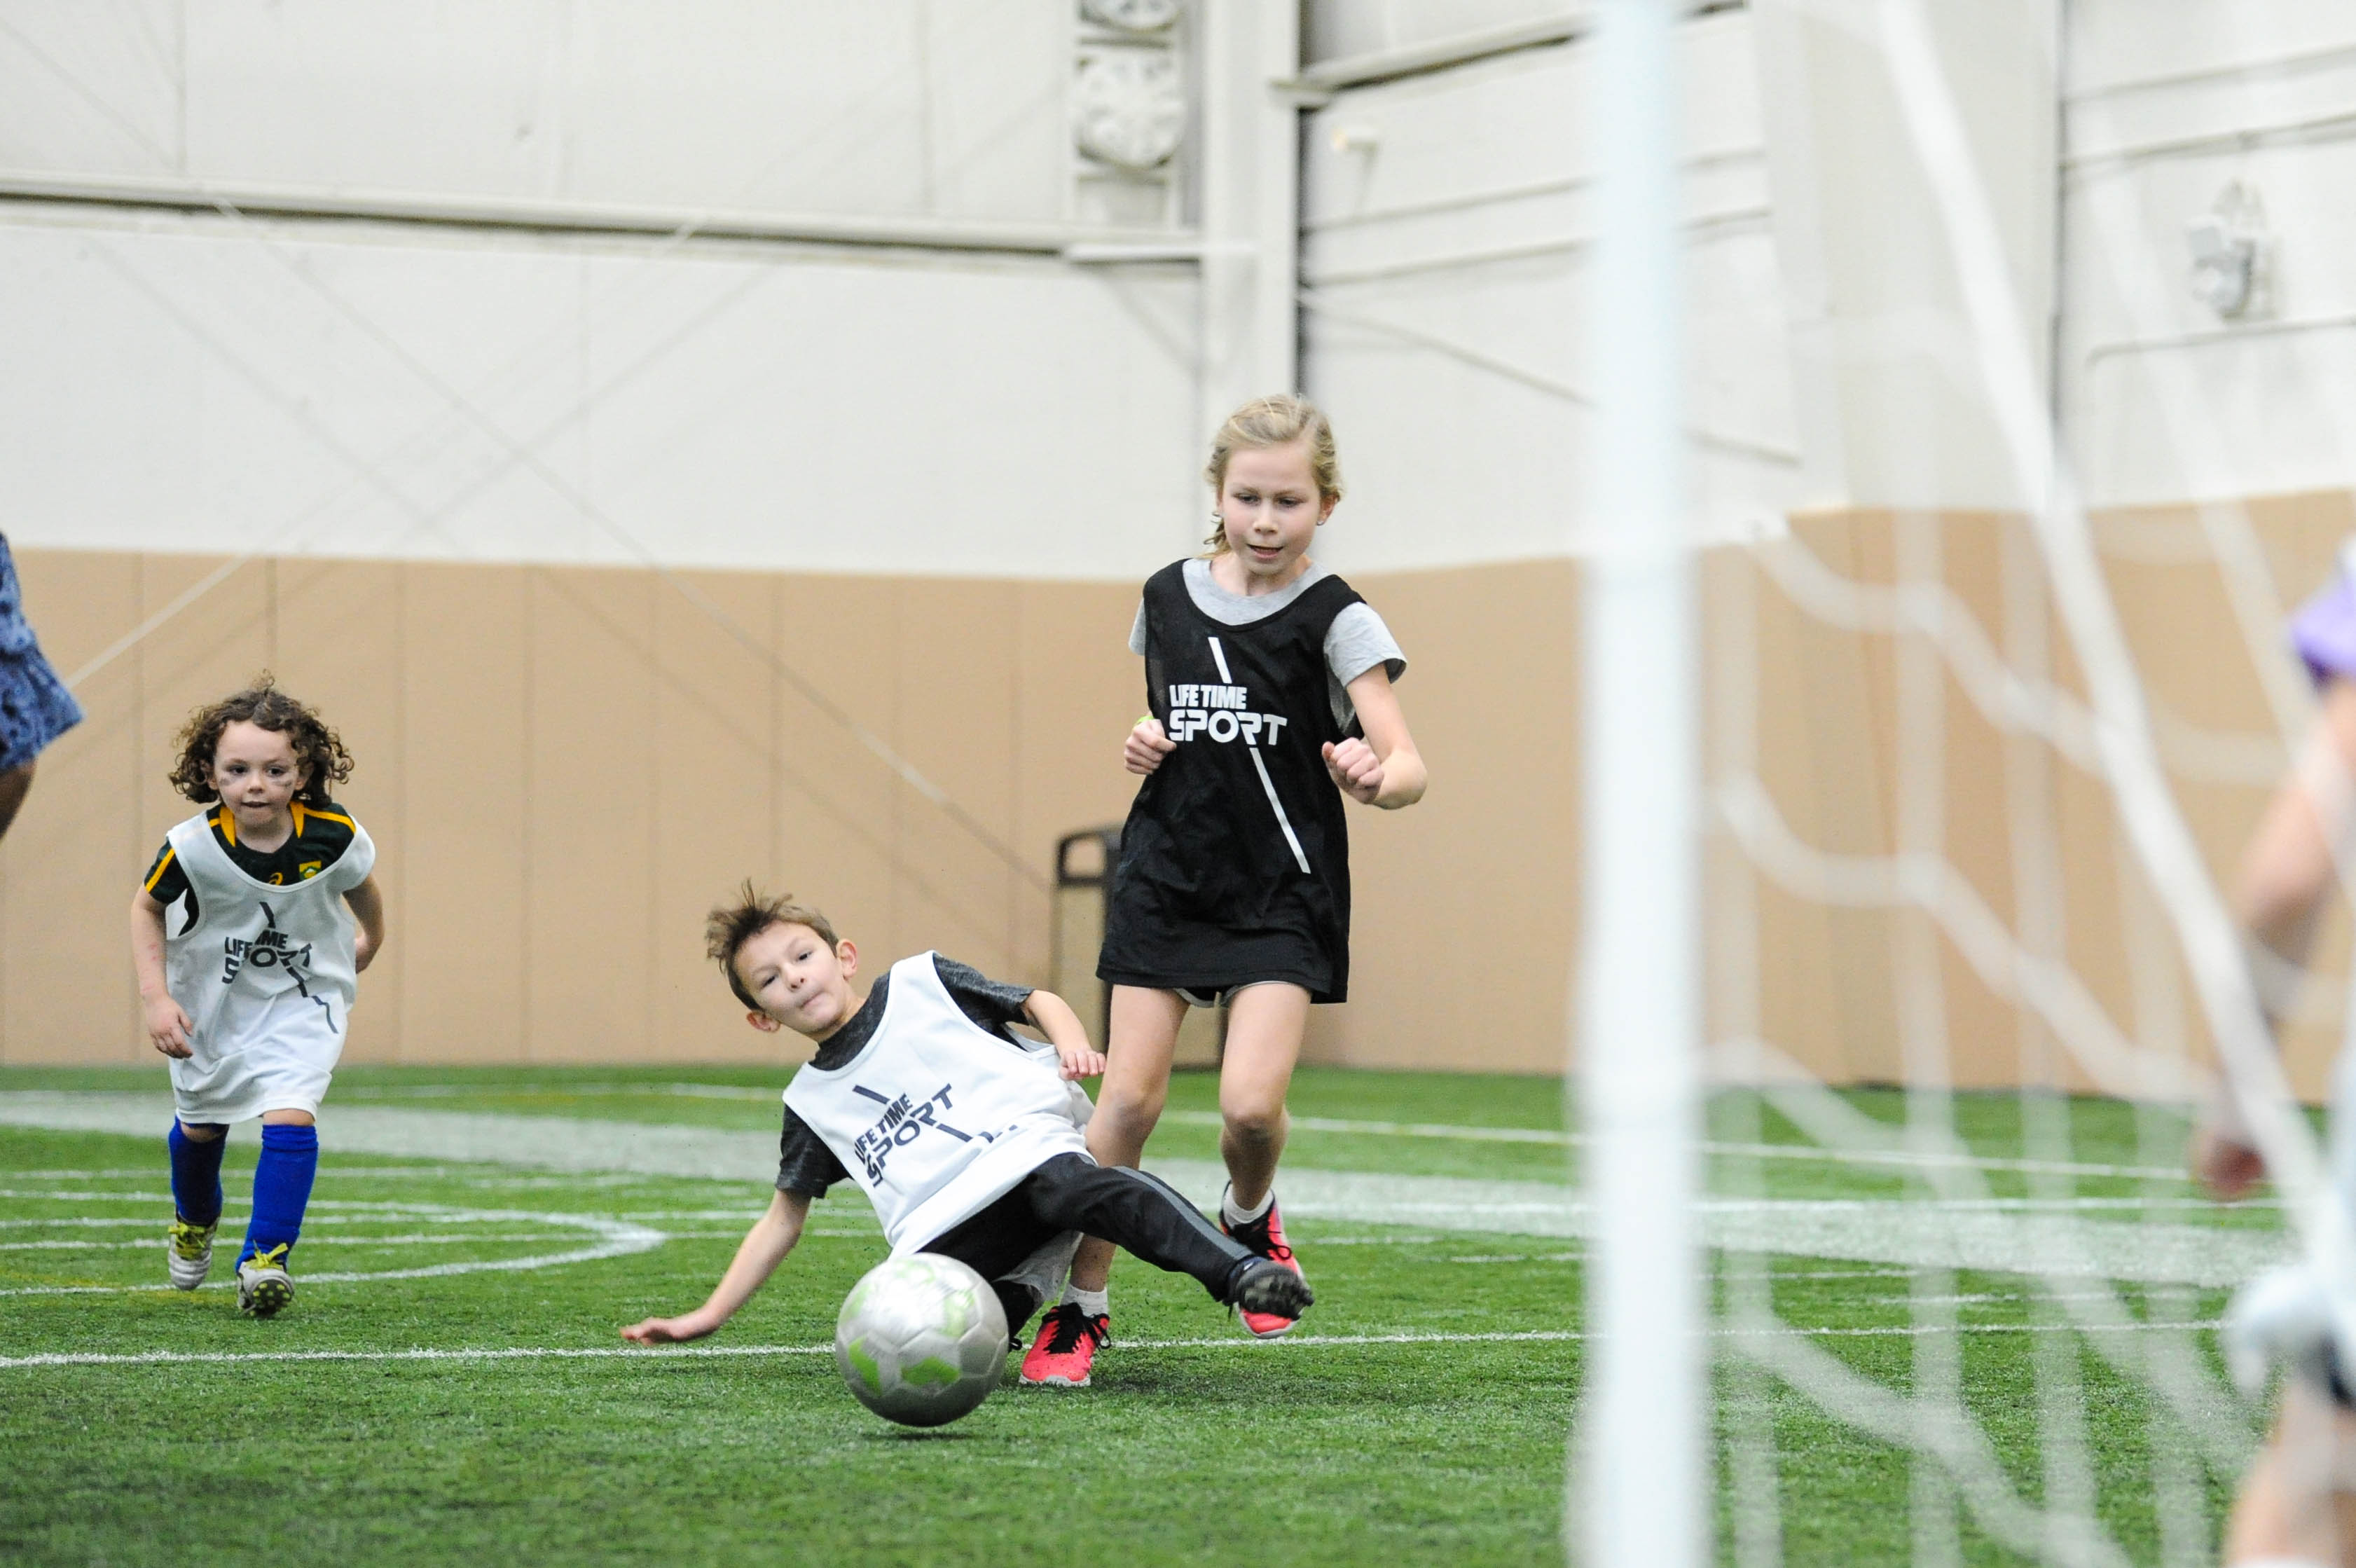 Should Kids Be Allowed To Play Soccer >> Experts Provide 3 Reasons U S Children Need To Play More